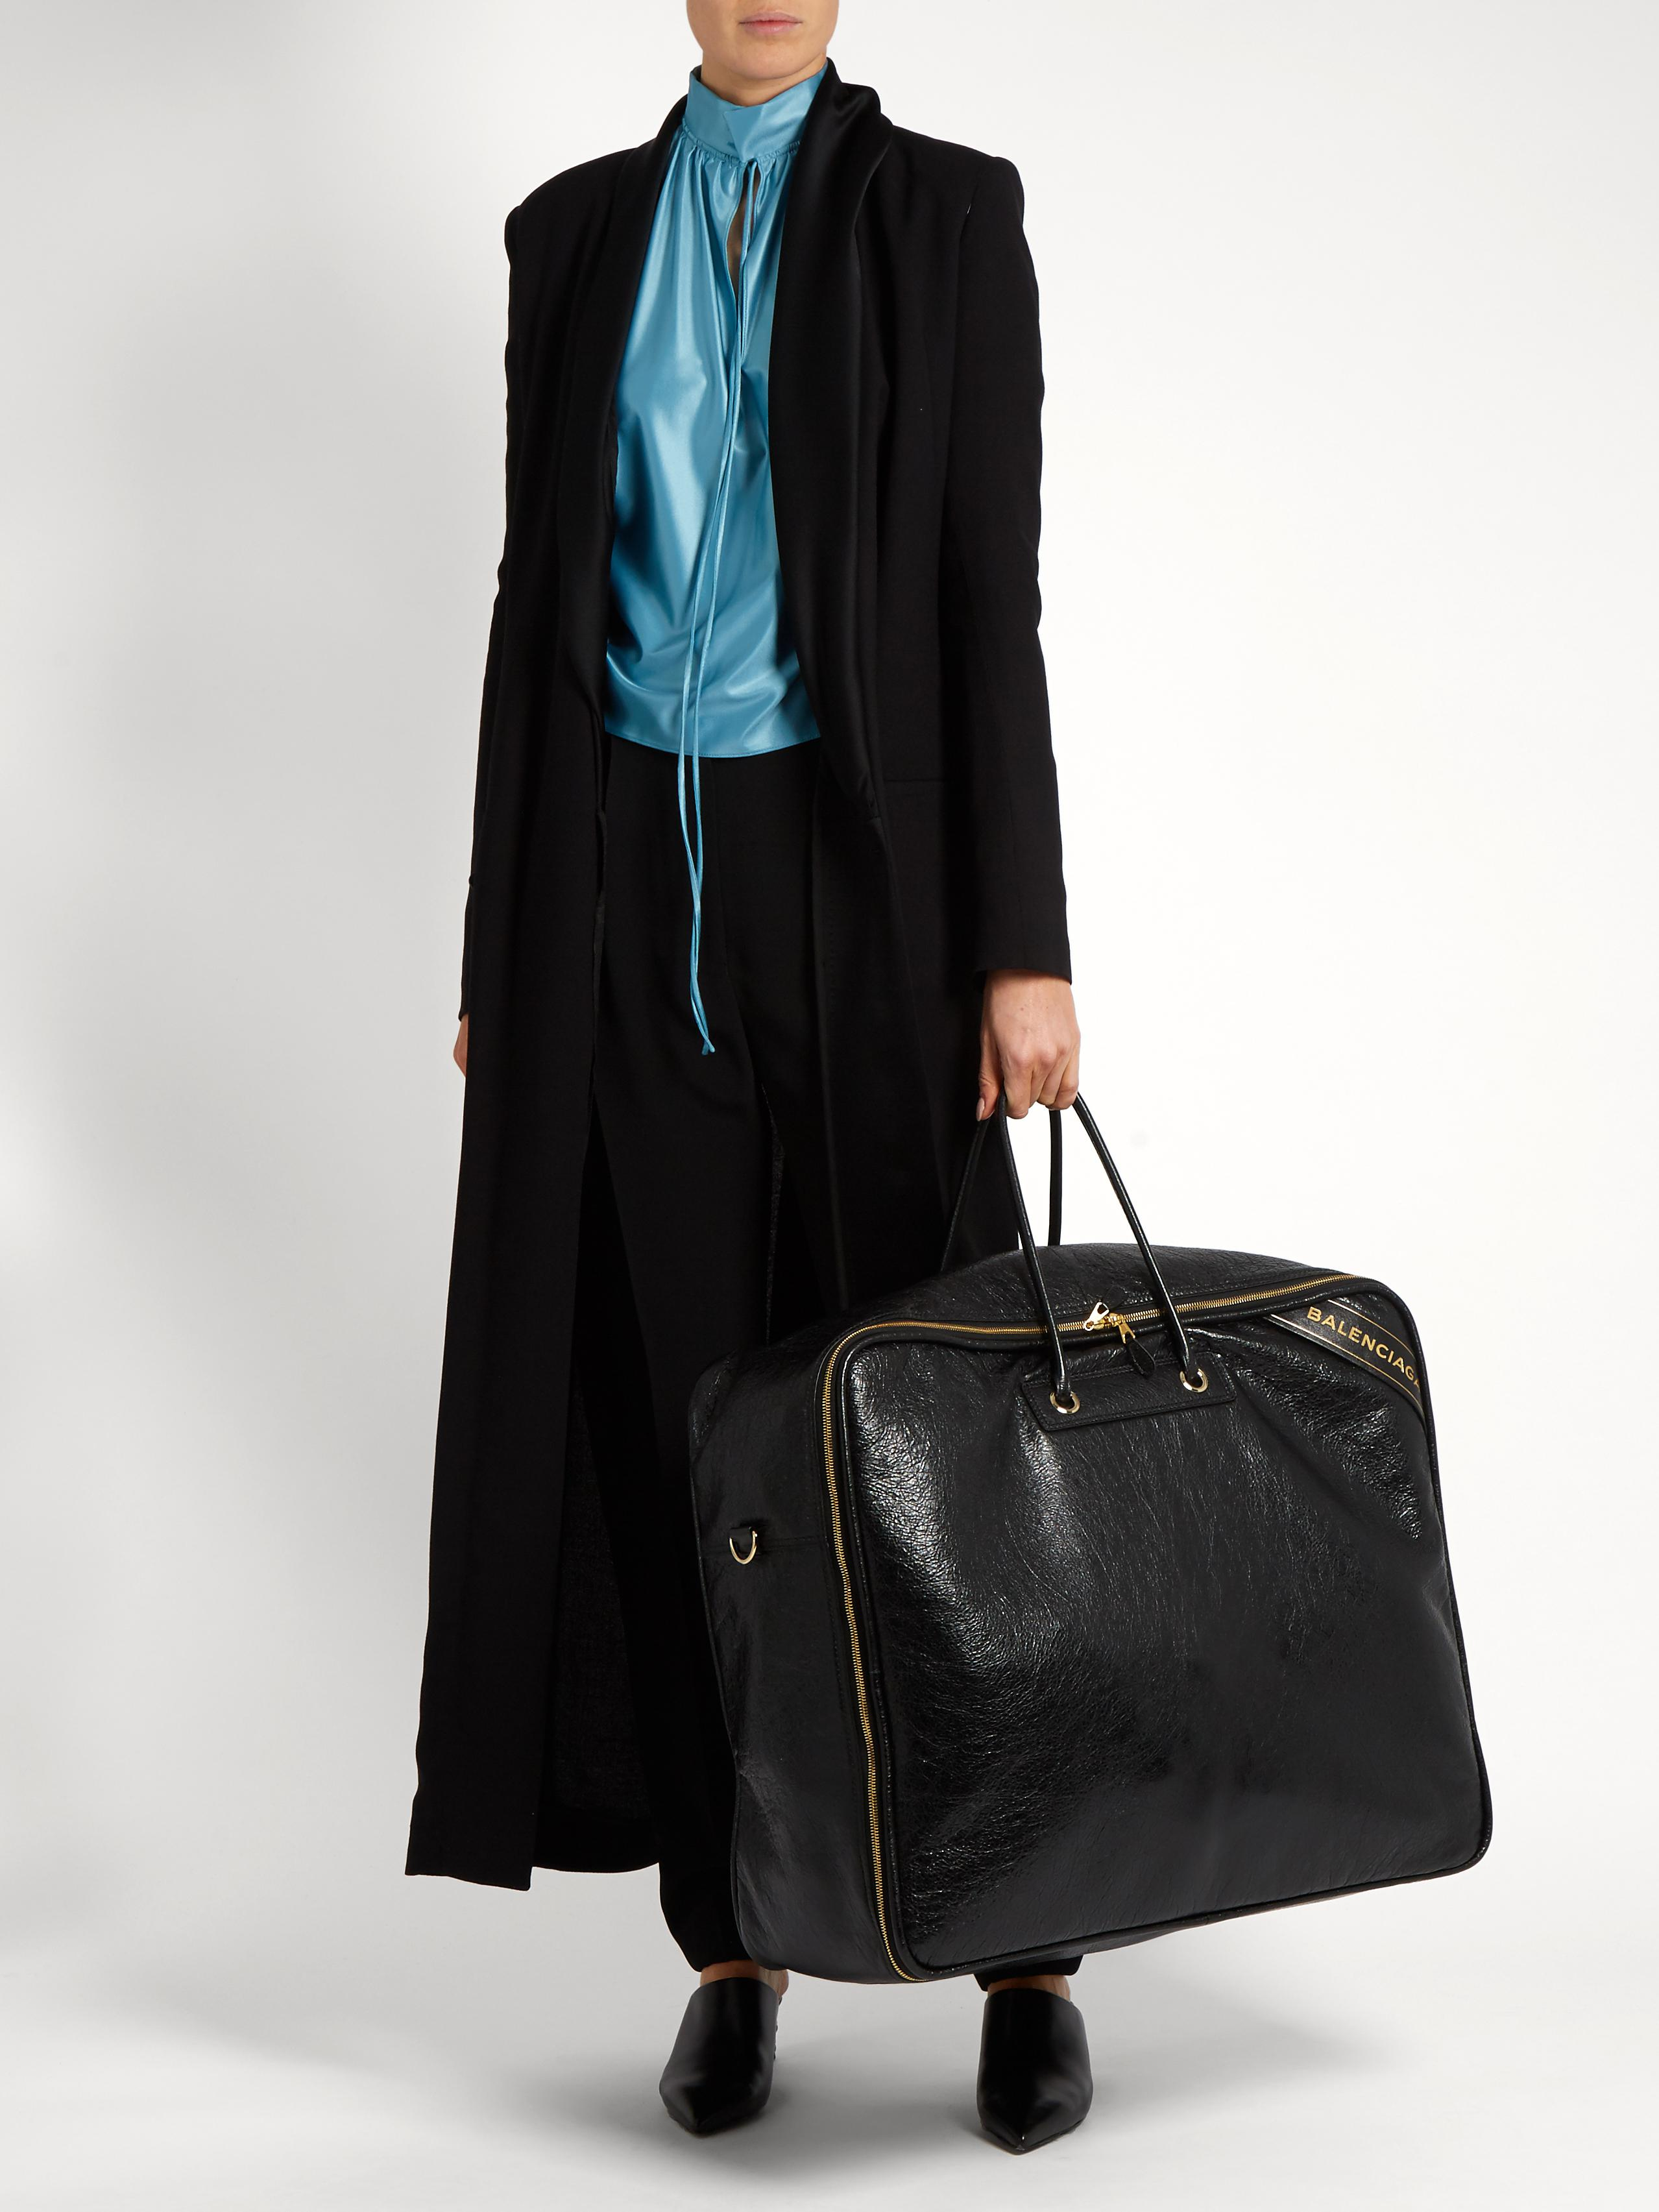 497cf6bdd9 Balenciaga Blanket Square Extra-large Leather Tote in Black - Lyst